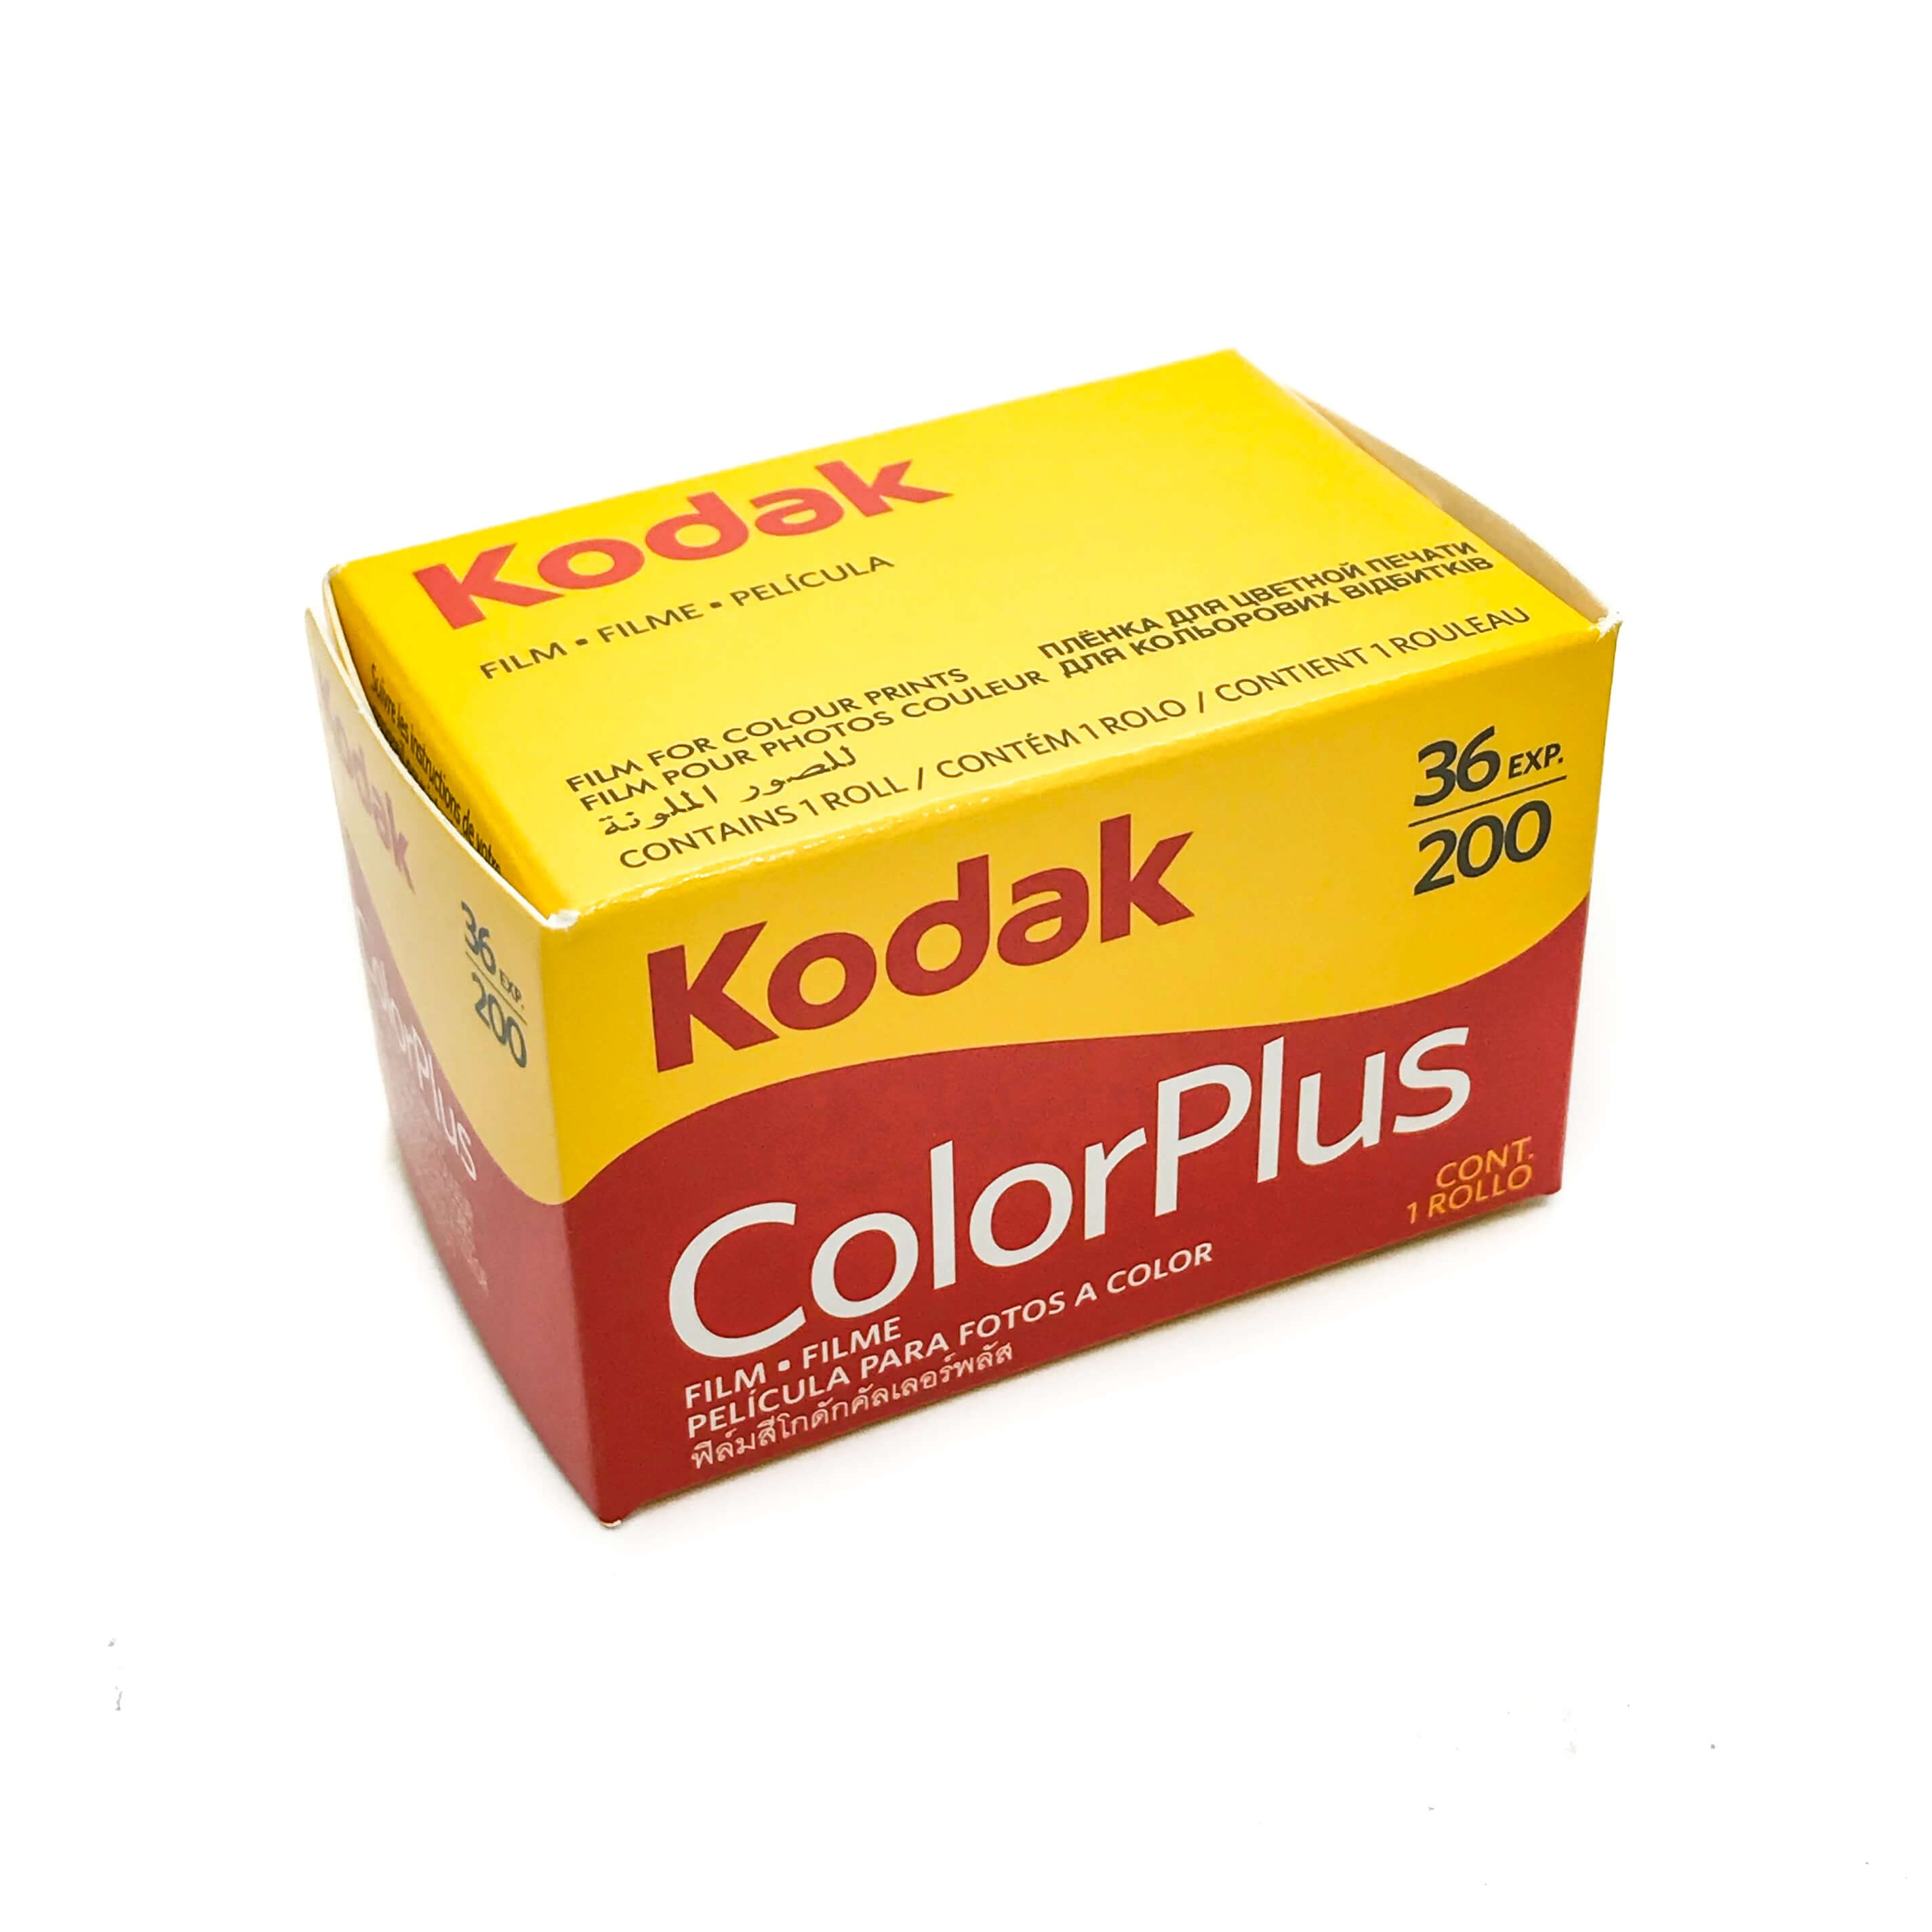 Kodak ColourPlus 200 36 exposure 35mm photographic film